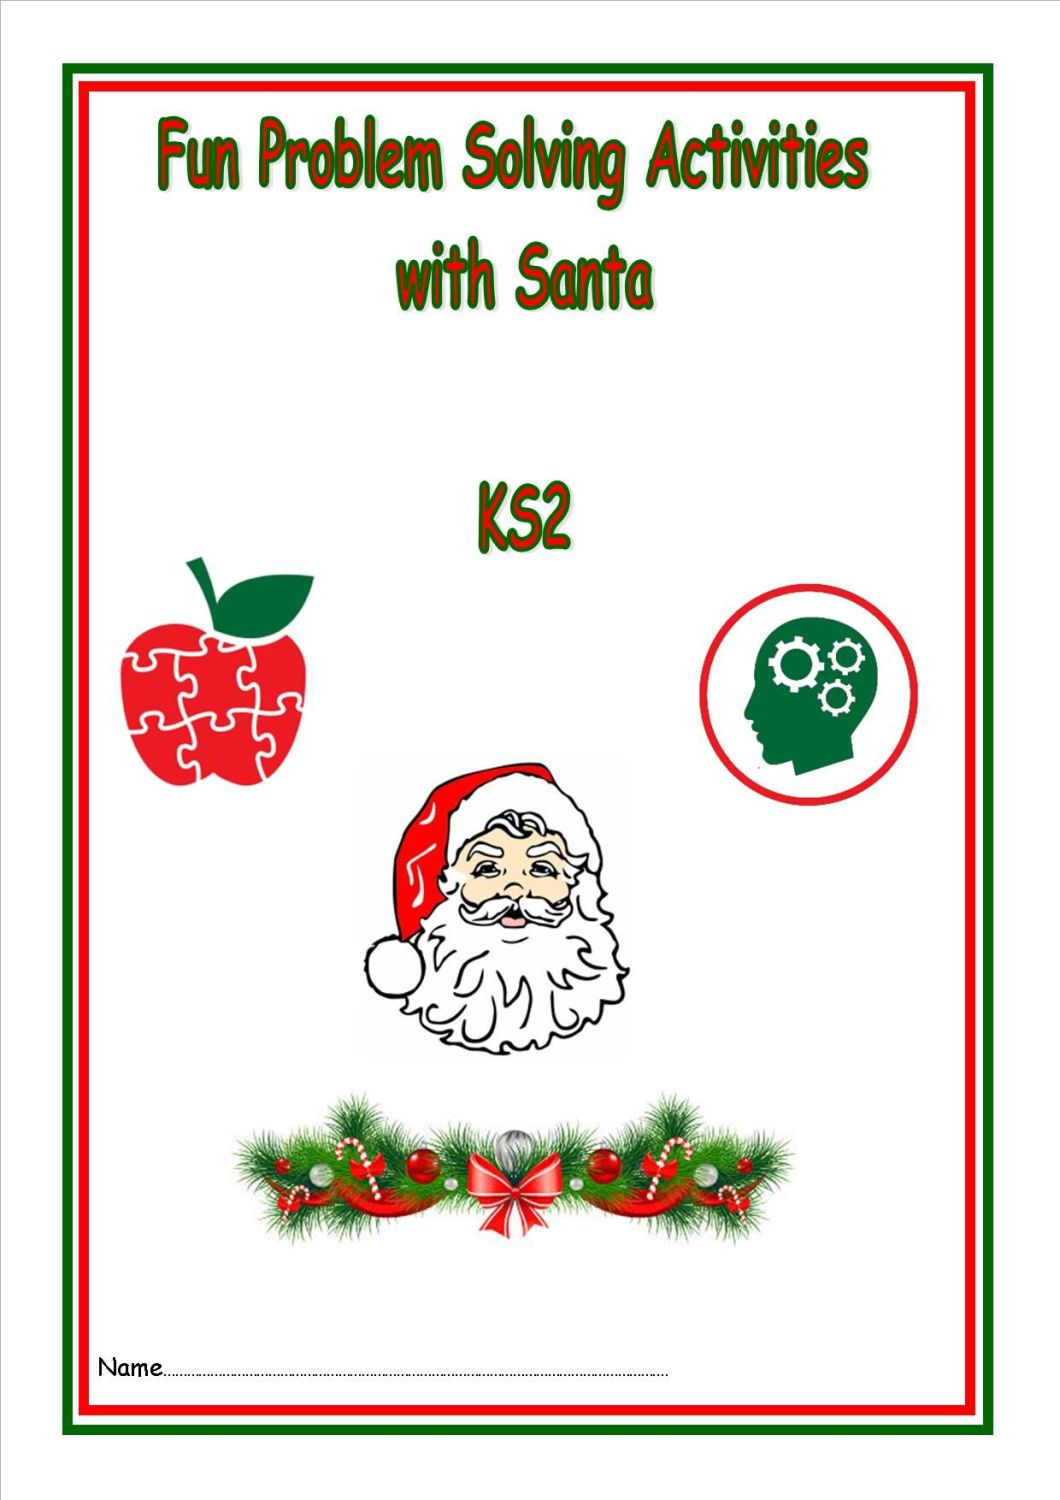 New KS2, Problem Solving with Santa activity booklet and FREE KS2 Festivals